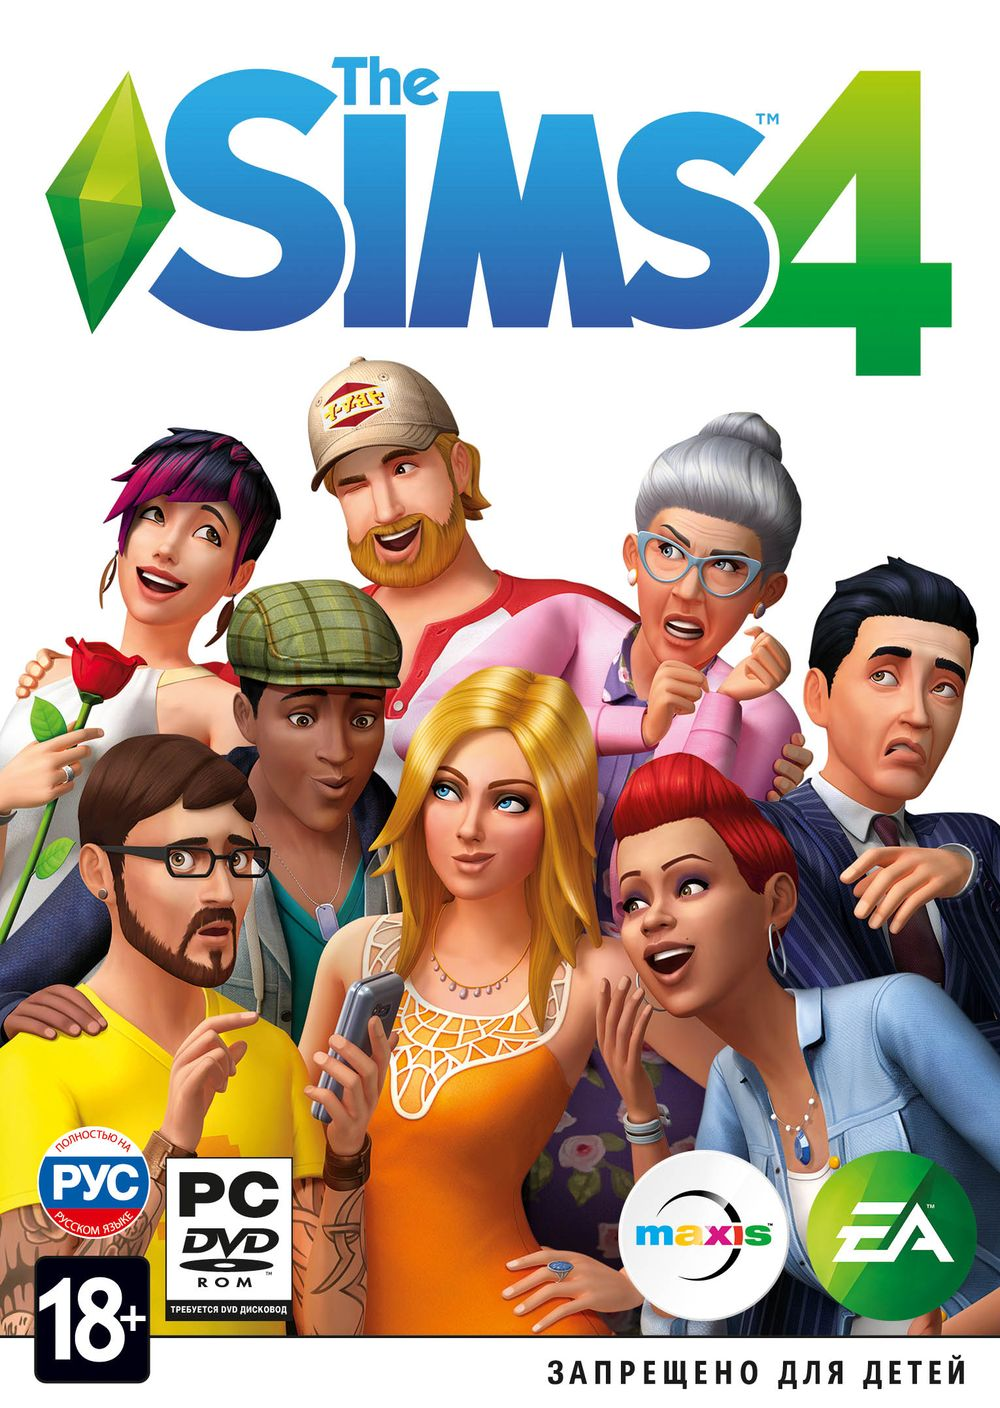 Cover The Sims 4: Deluxe Edition [v 1.50.67.1020] (2014) PC | RePack by R.G. The mechanics